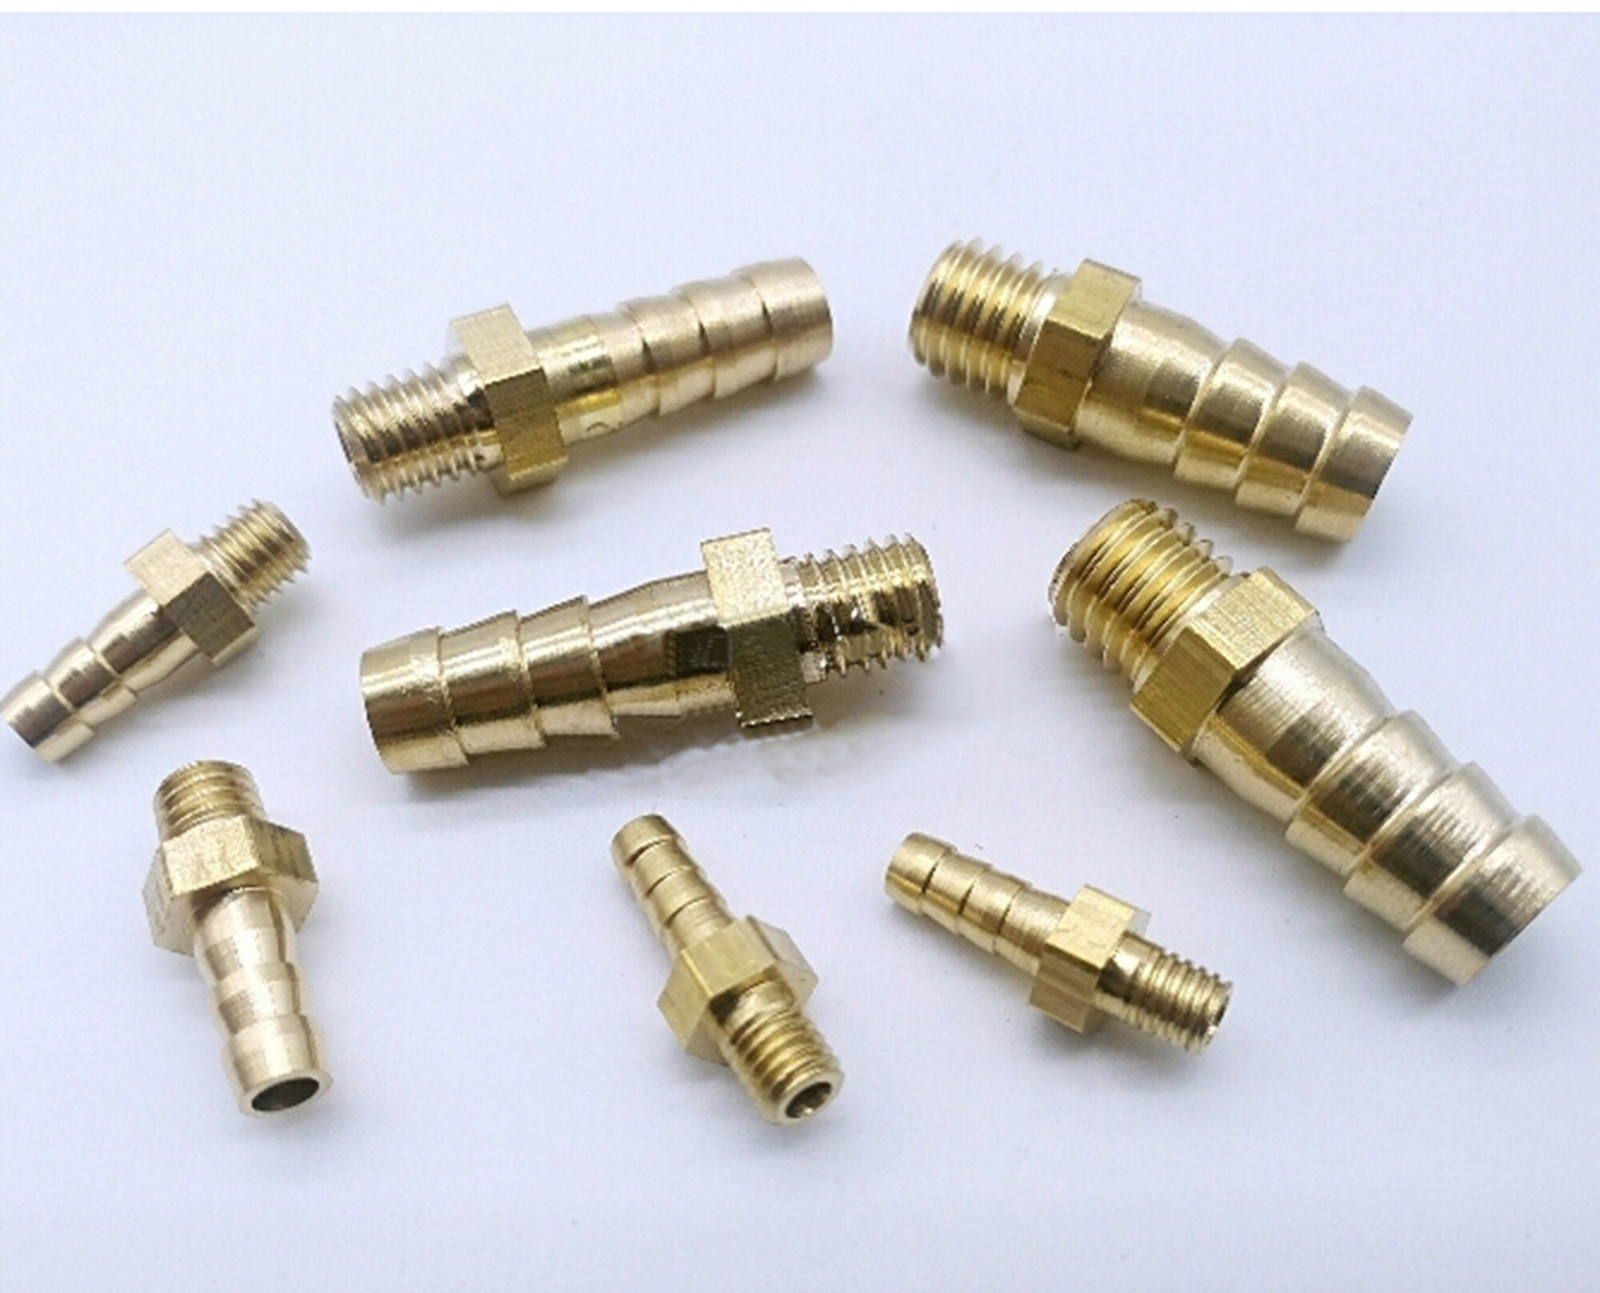 2.5 3 4 5 6 8 10mm Hose Barb To  M3 M5 M6 M8 Metric Male Mini Brass Hosetail Pipe Fitting Connector Water Gas Fuel Home Garden